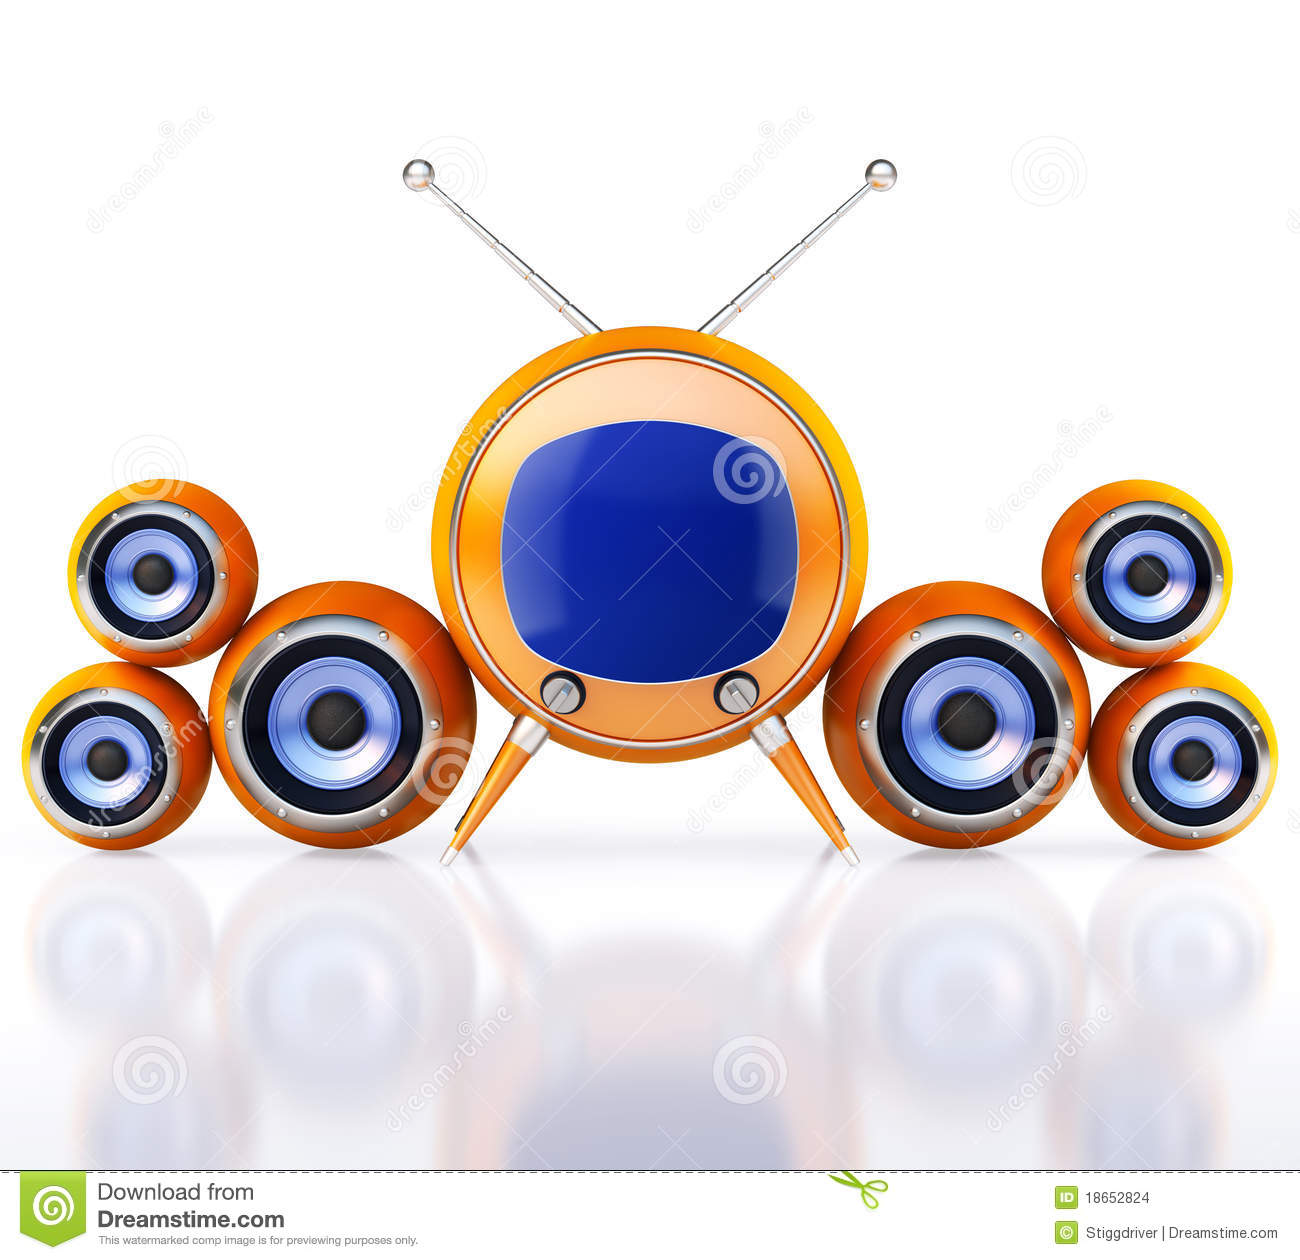 Remarkable More similar stock images of ` Home theatre design concept ` 1300 x 1260 · 137 kB · jpeg